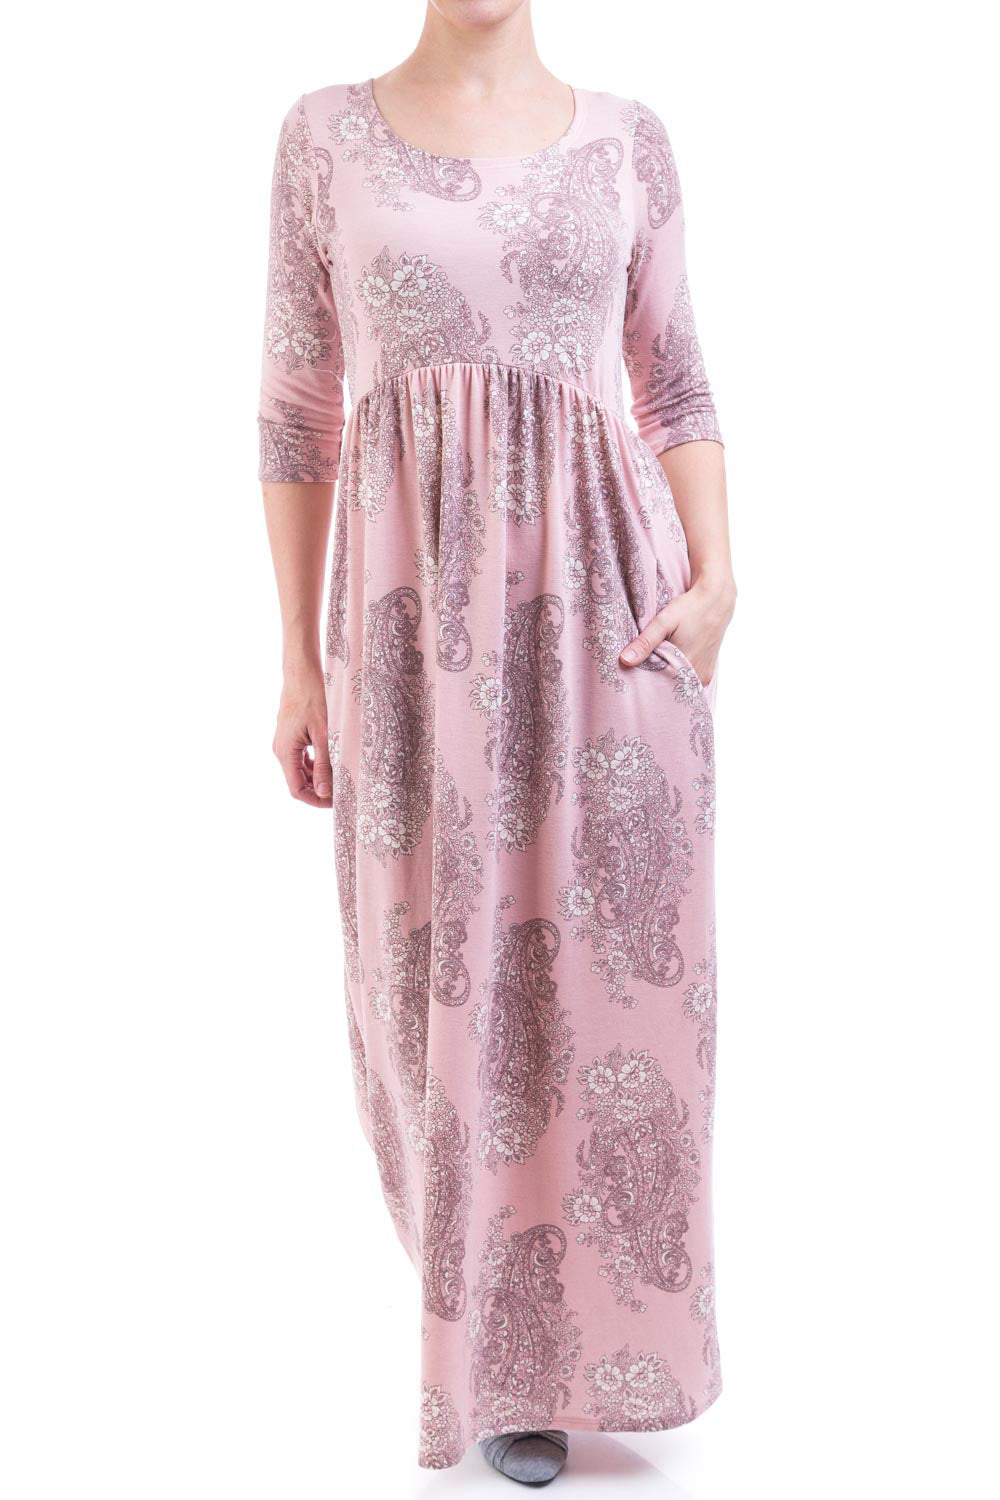 Type 2 Bennet Sisters Maxi Dress In Pink